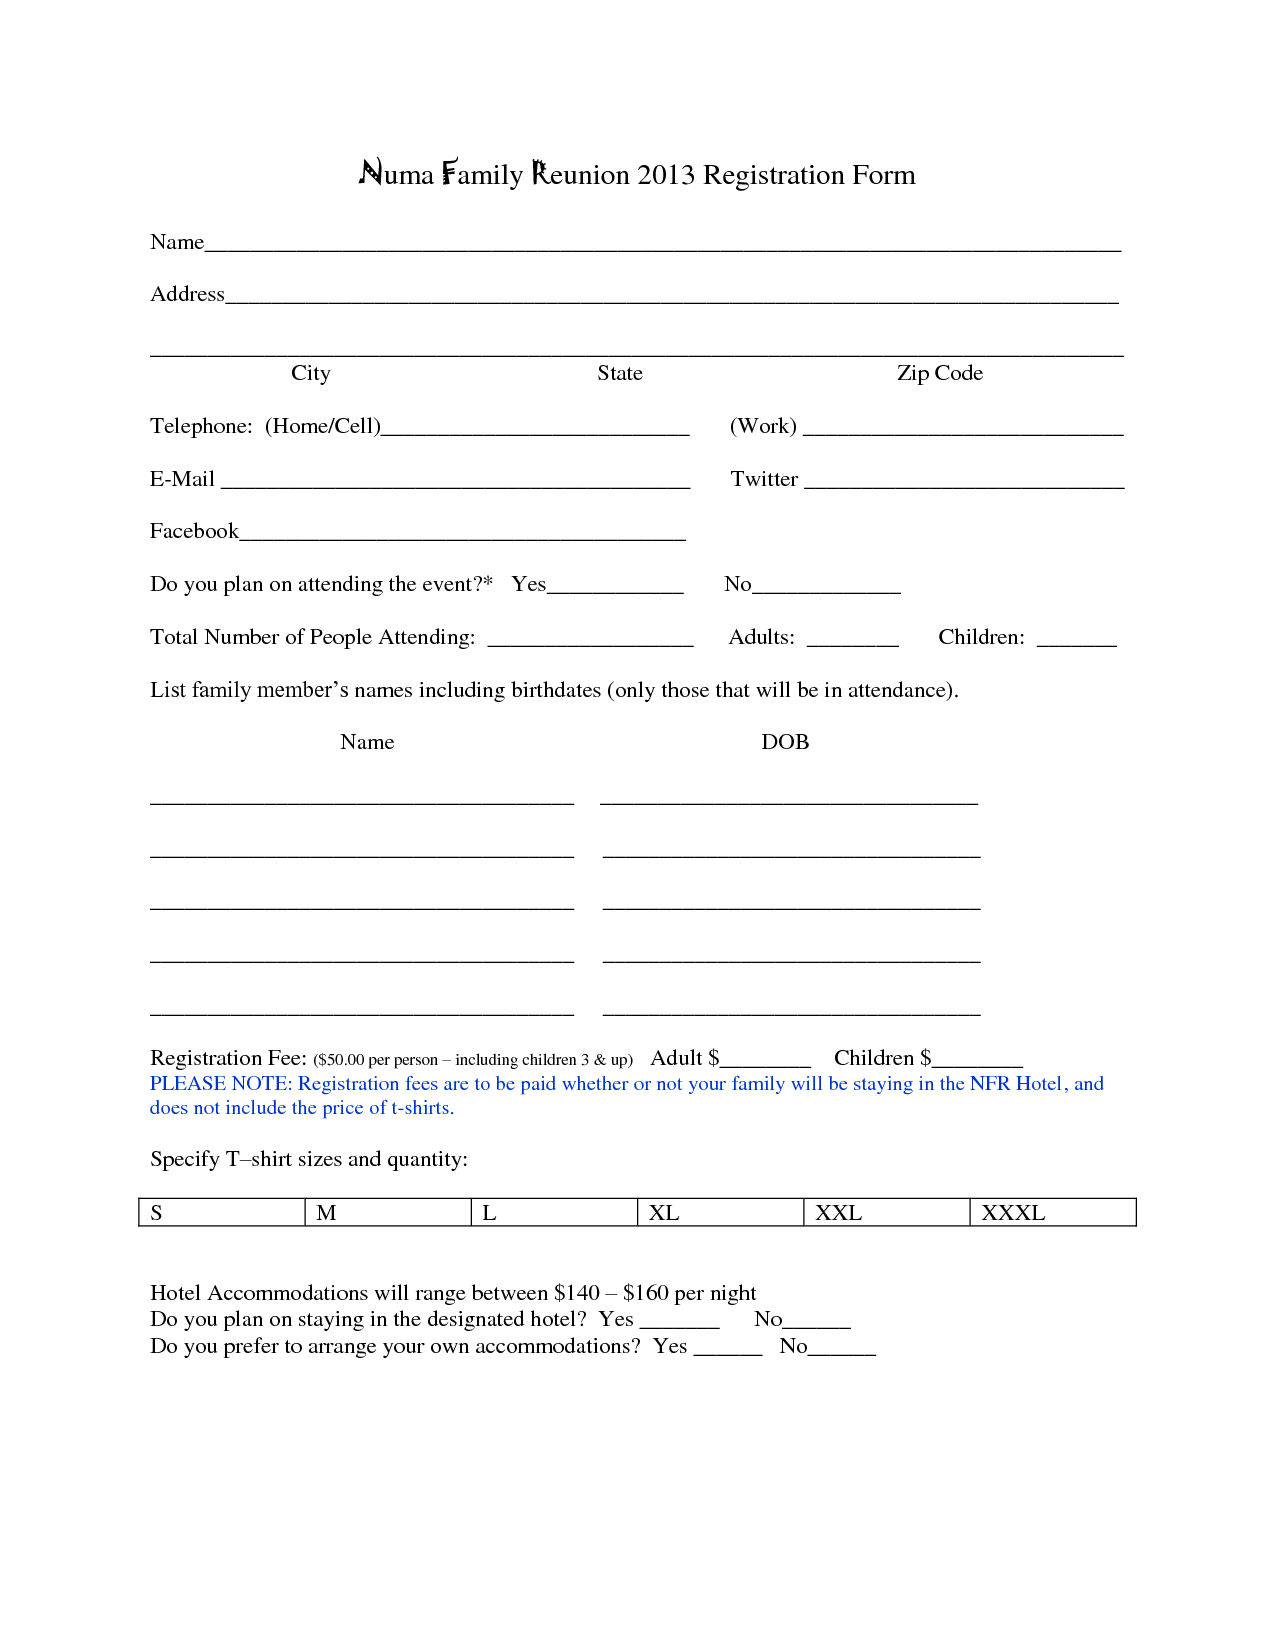 Paper Registration Form Template Family Reunion Registration Form Template  Family Reunions .